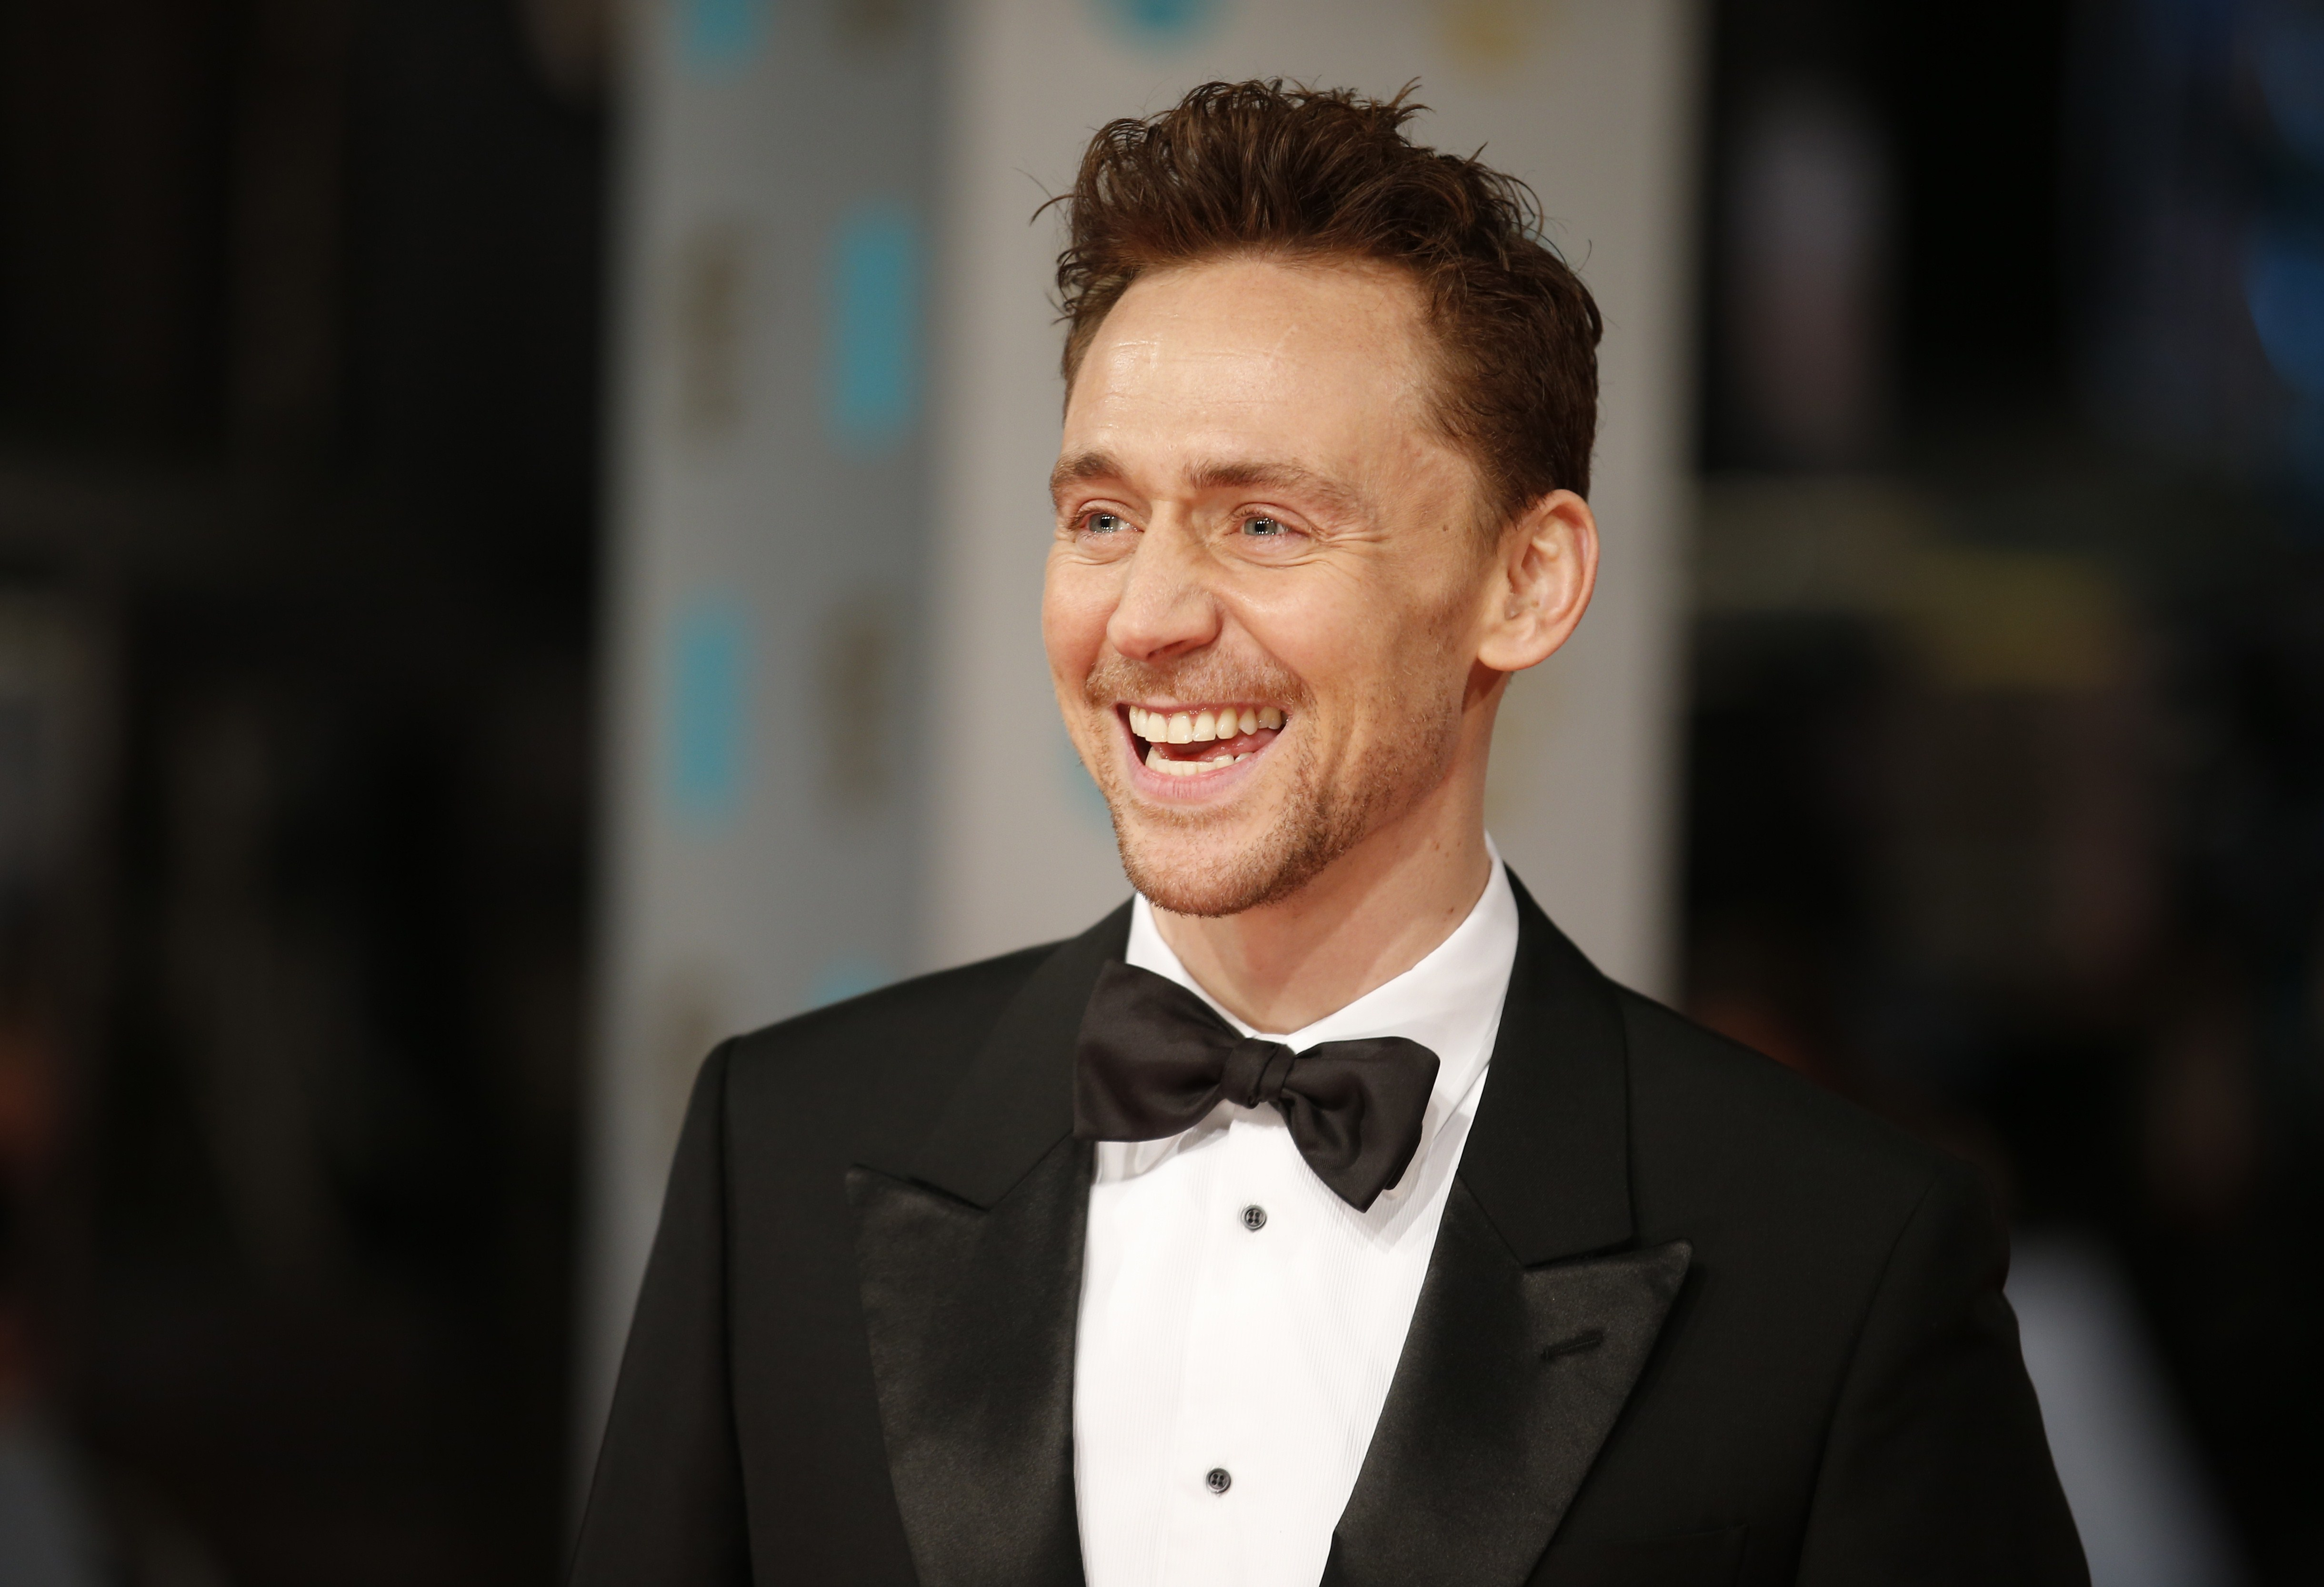 5 Celebrities Tom Hiddleston Has Dated, According To